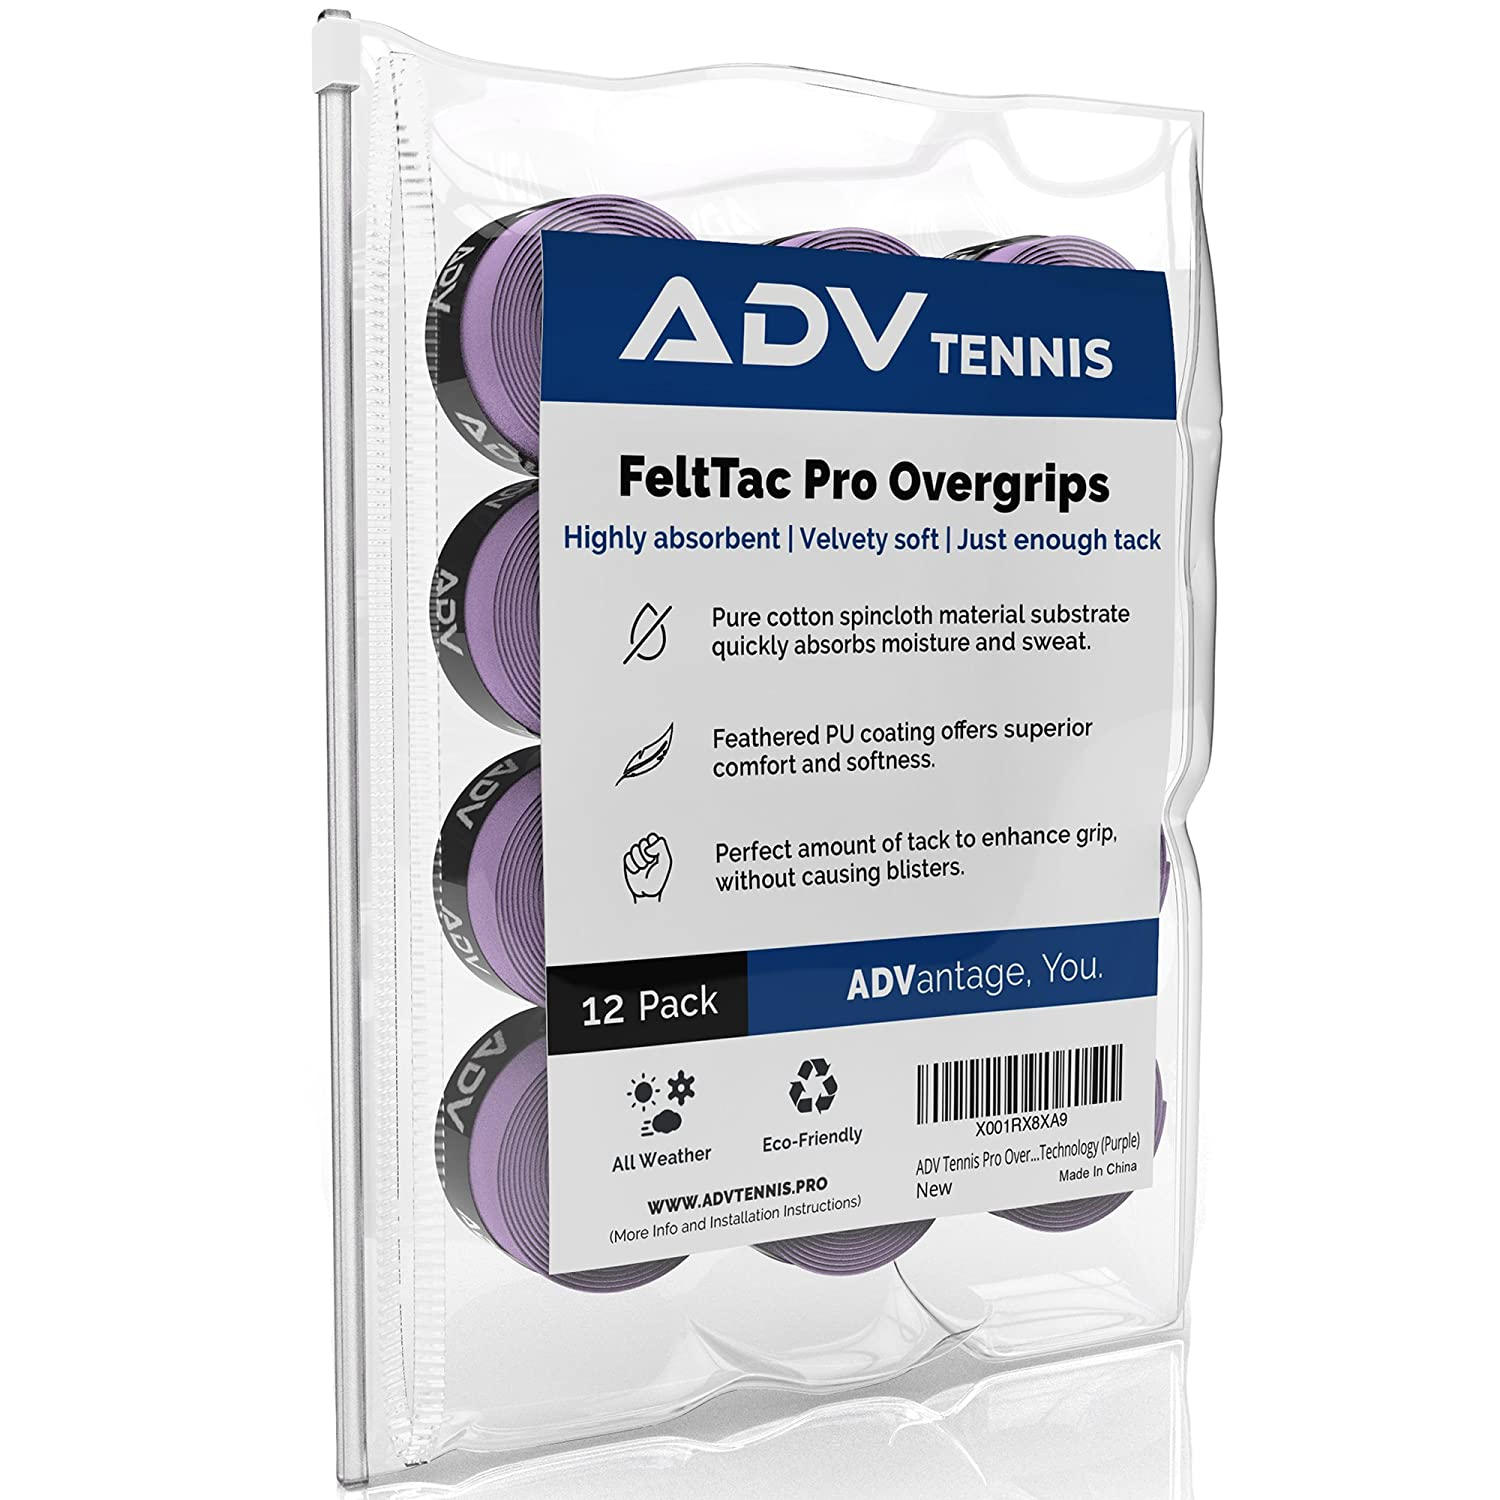 ADV Tennis Dry Overgrip - 12 Pack - Remarkably Absorbent - Must Feel Velvety Comfort - Exclusive FeltTac Material